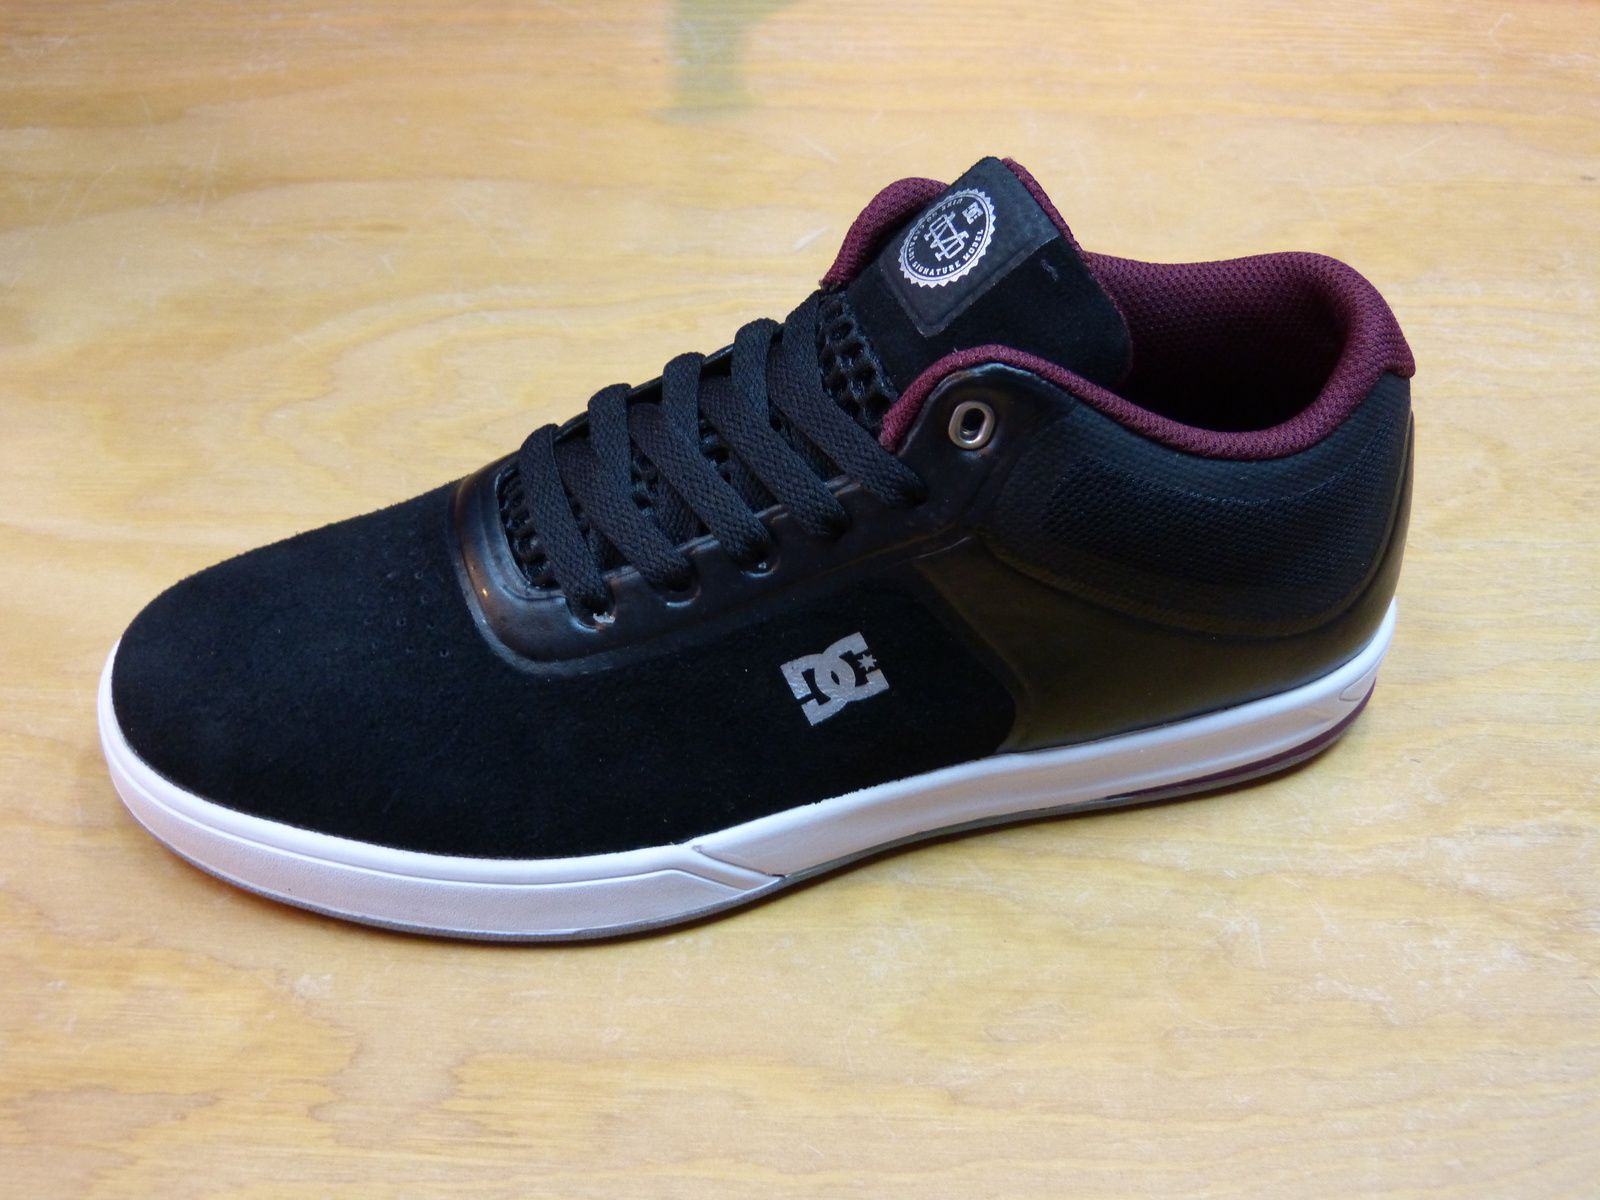 DC Shoes Fall 2014 part 1